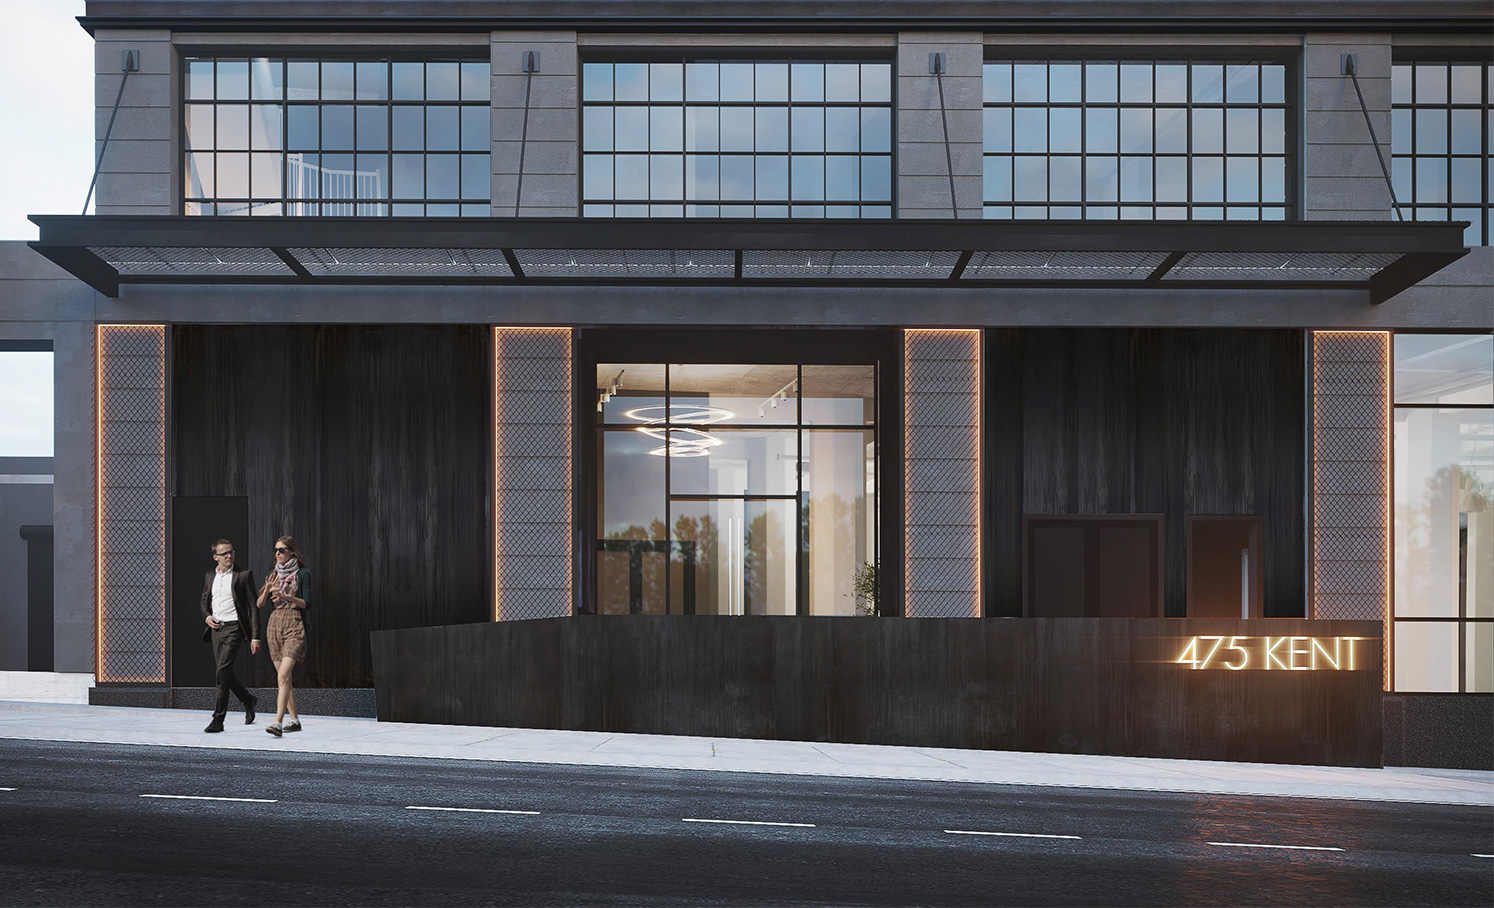 475 Kent Ave Williamsburg Multi-Family Architecture by Meshberg Group